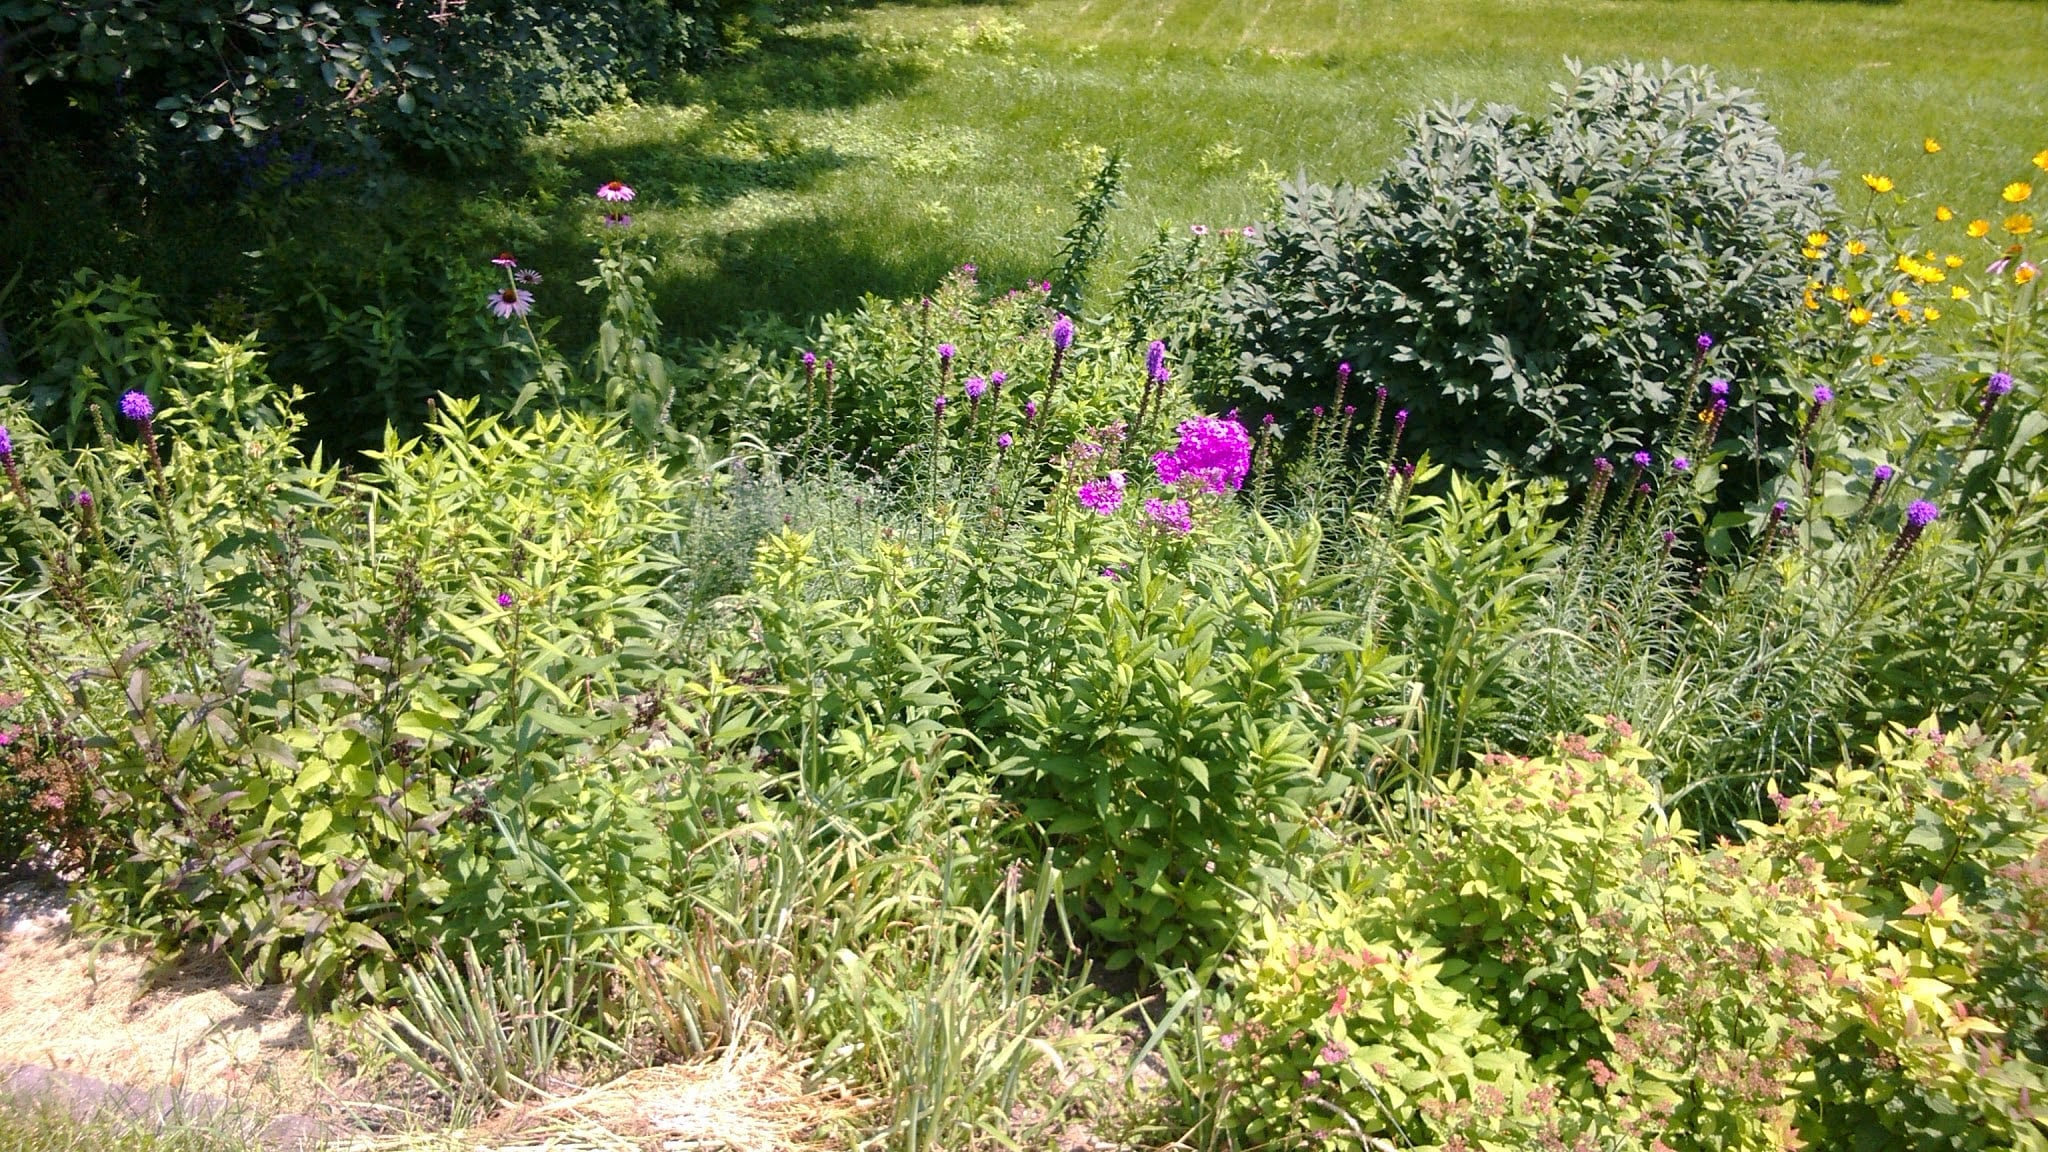 Residential Native Garden in Backyard